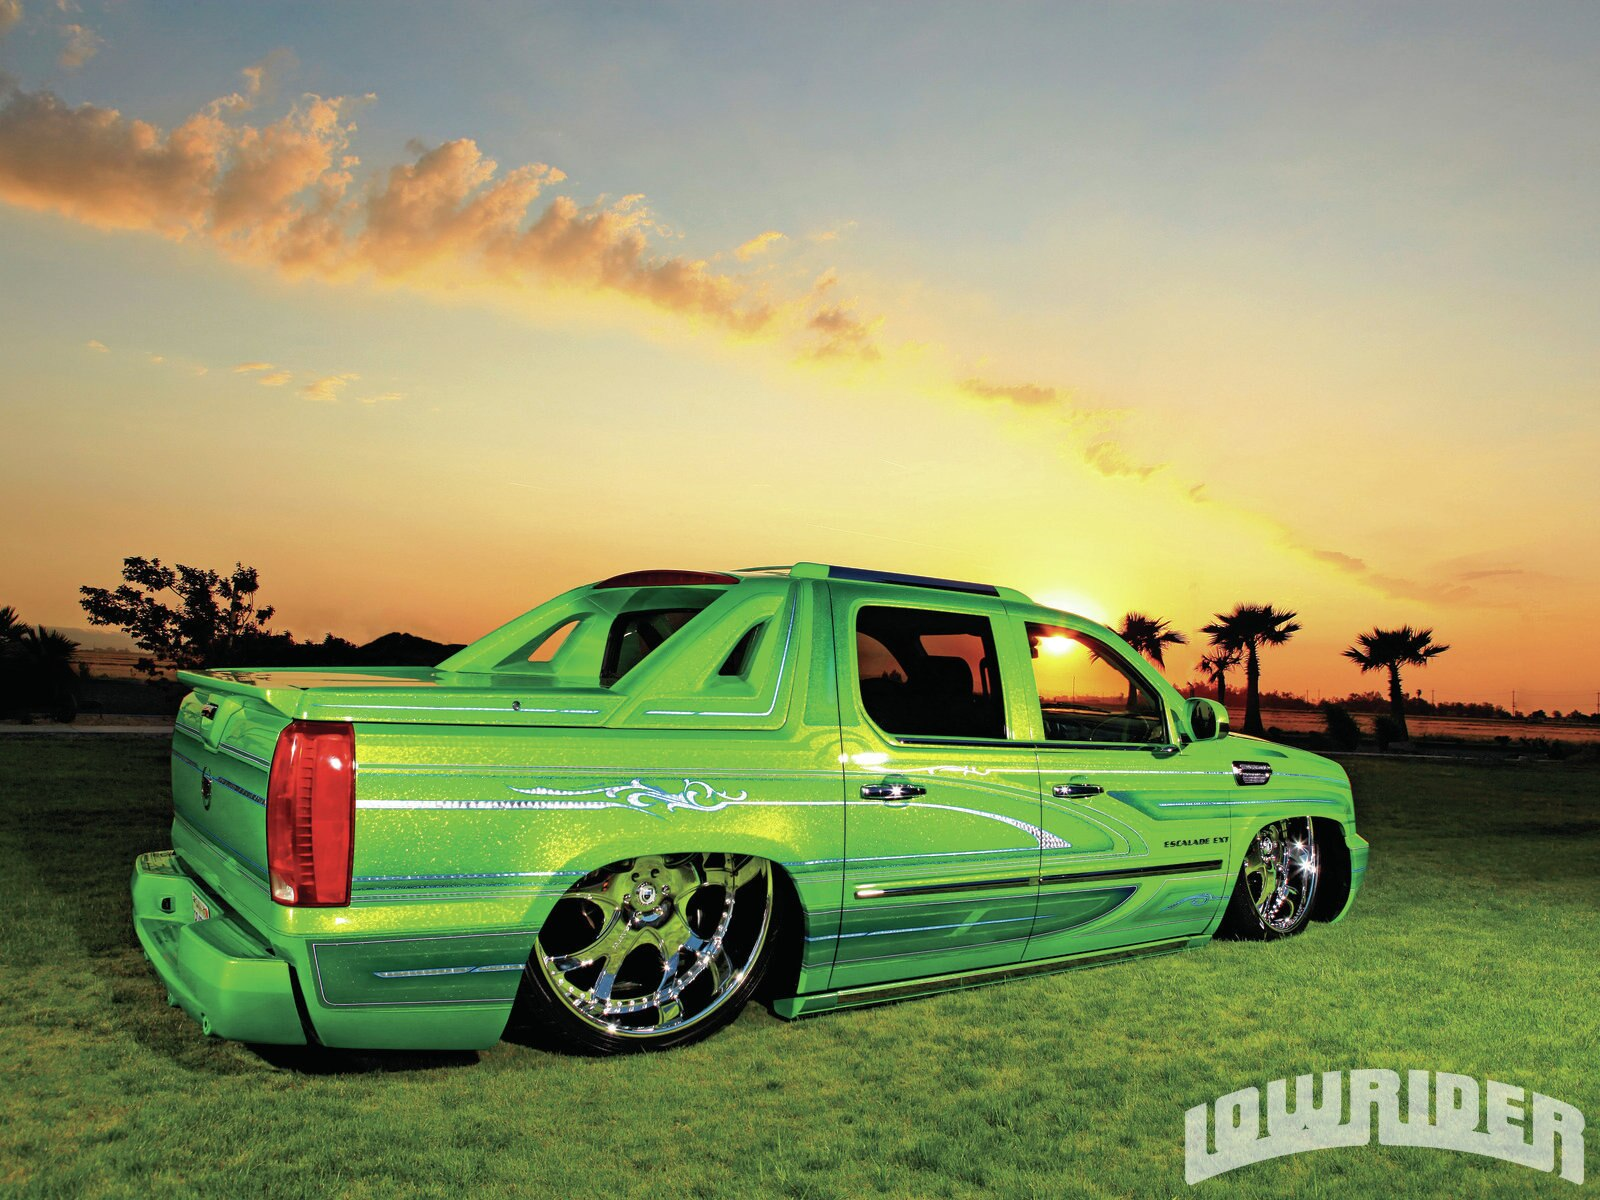 Pimped Out Cars Wallpapers 2009 Cadillac Escalade Ext Lowrider Magazine